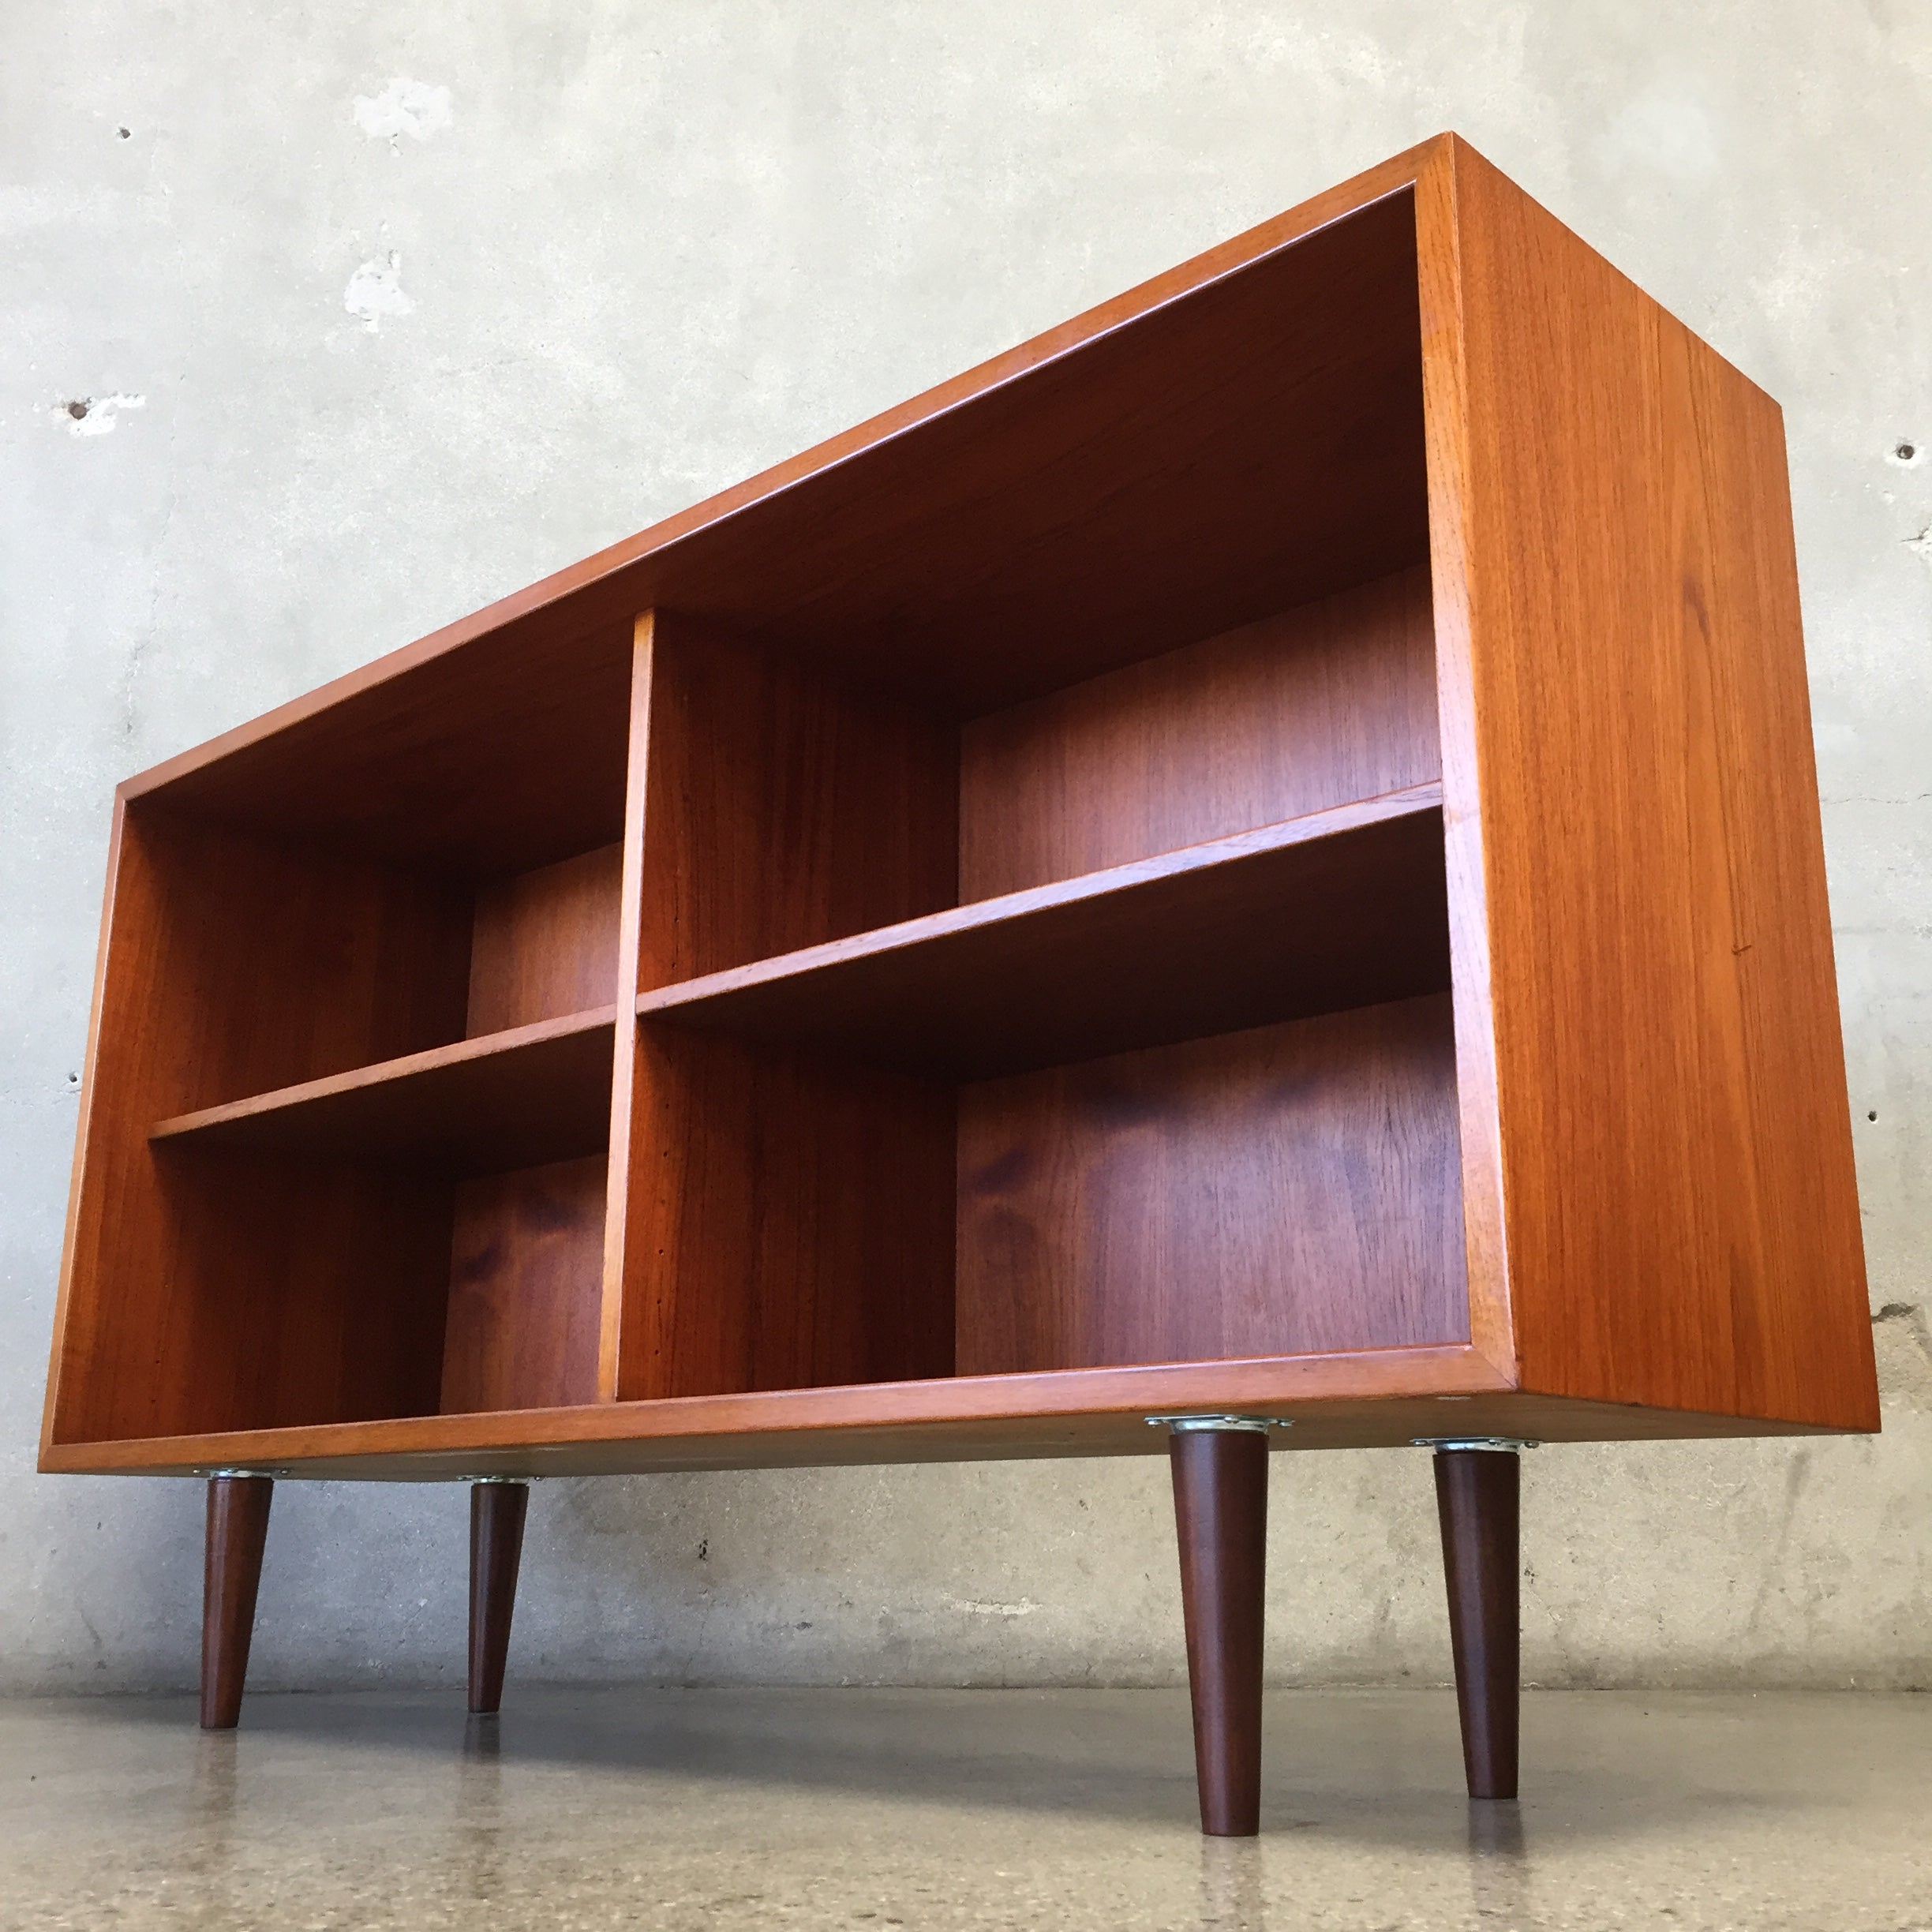 x any h me d w contact modern dimensions phylum teak please furniture with are danish bookcase questions dsc